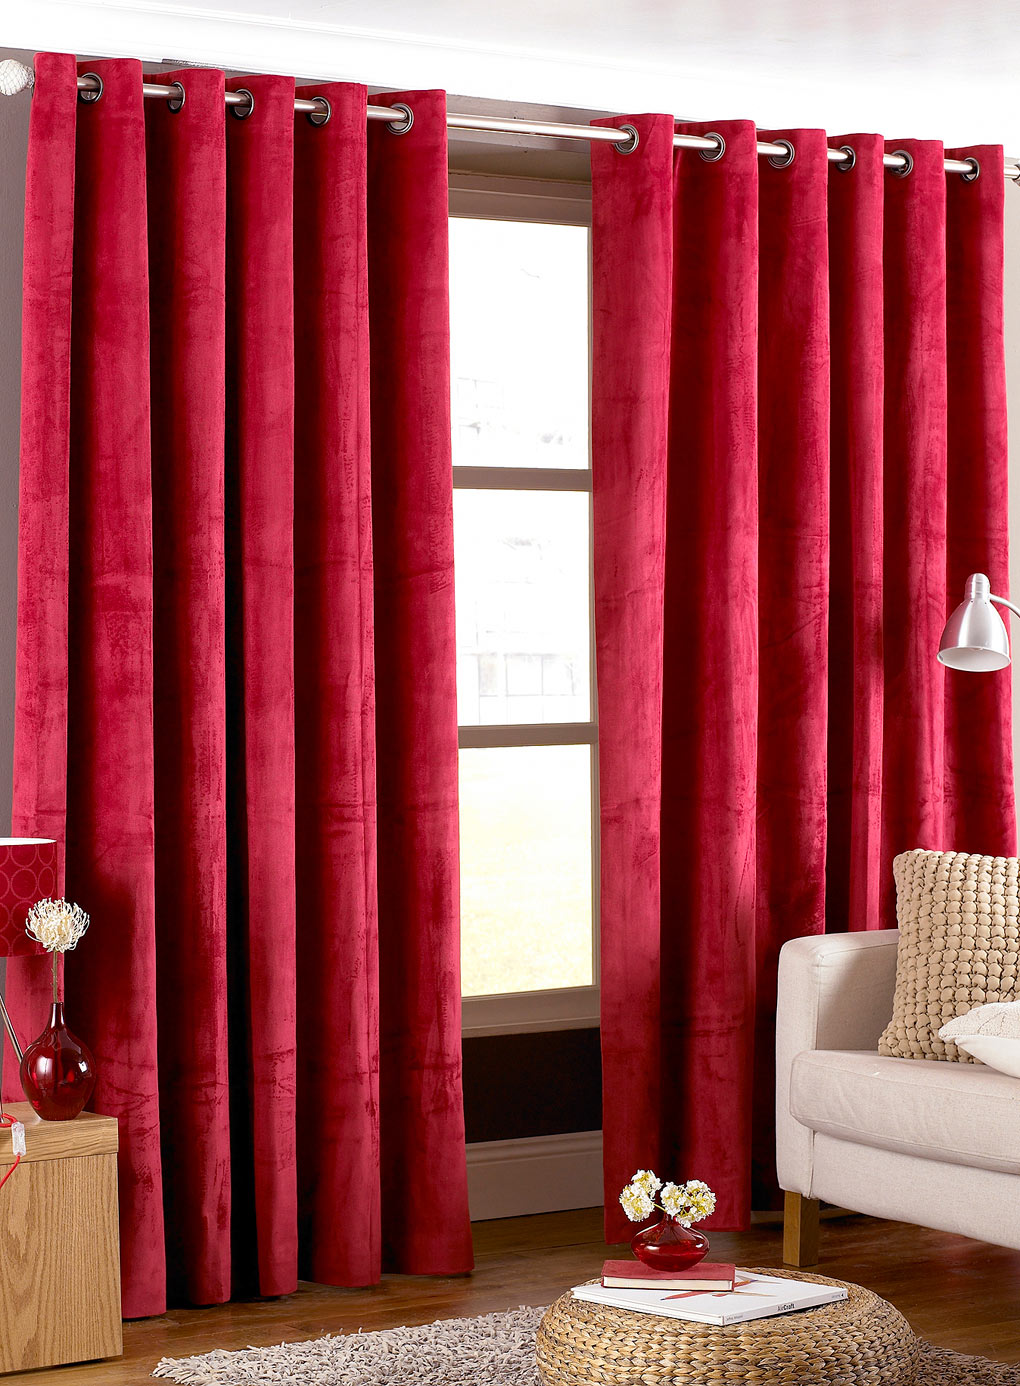 20 Hottest Curtain Designs For 2019 Pouted